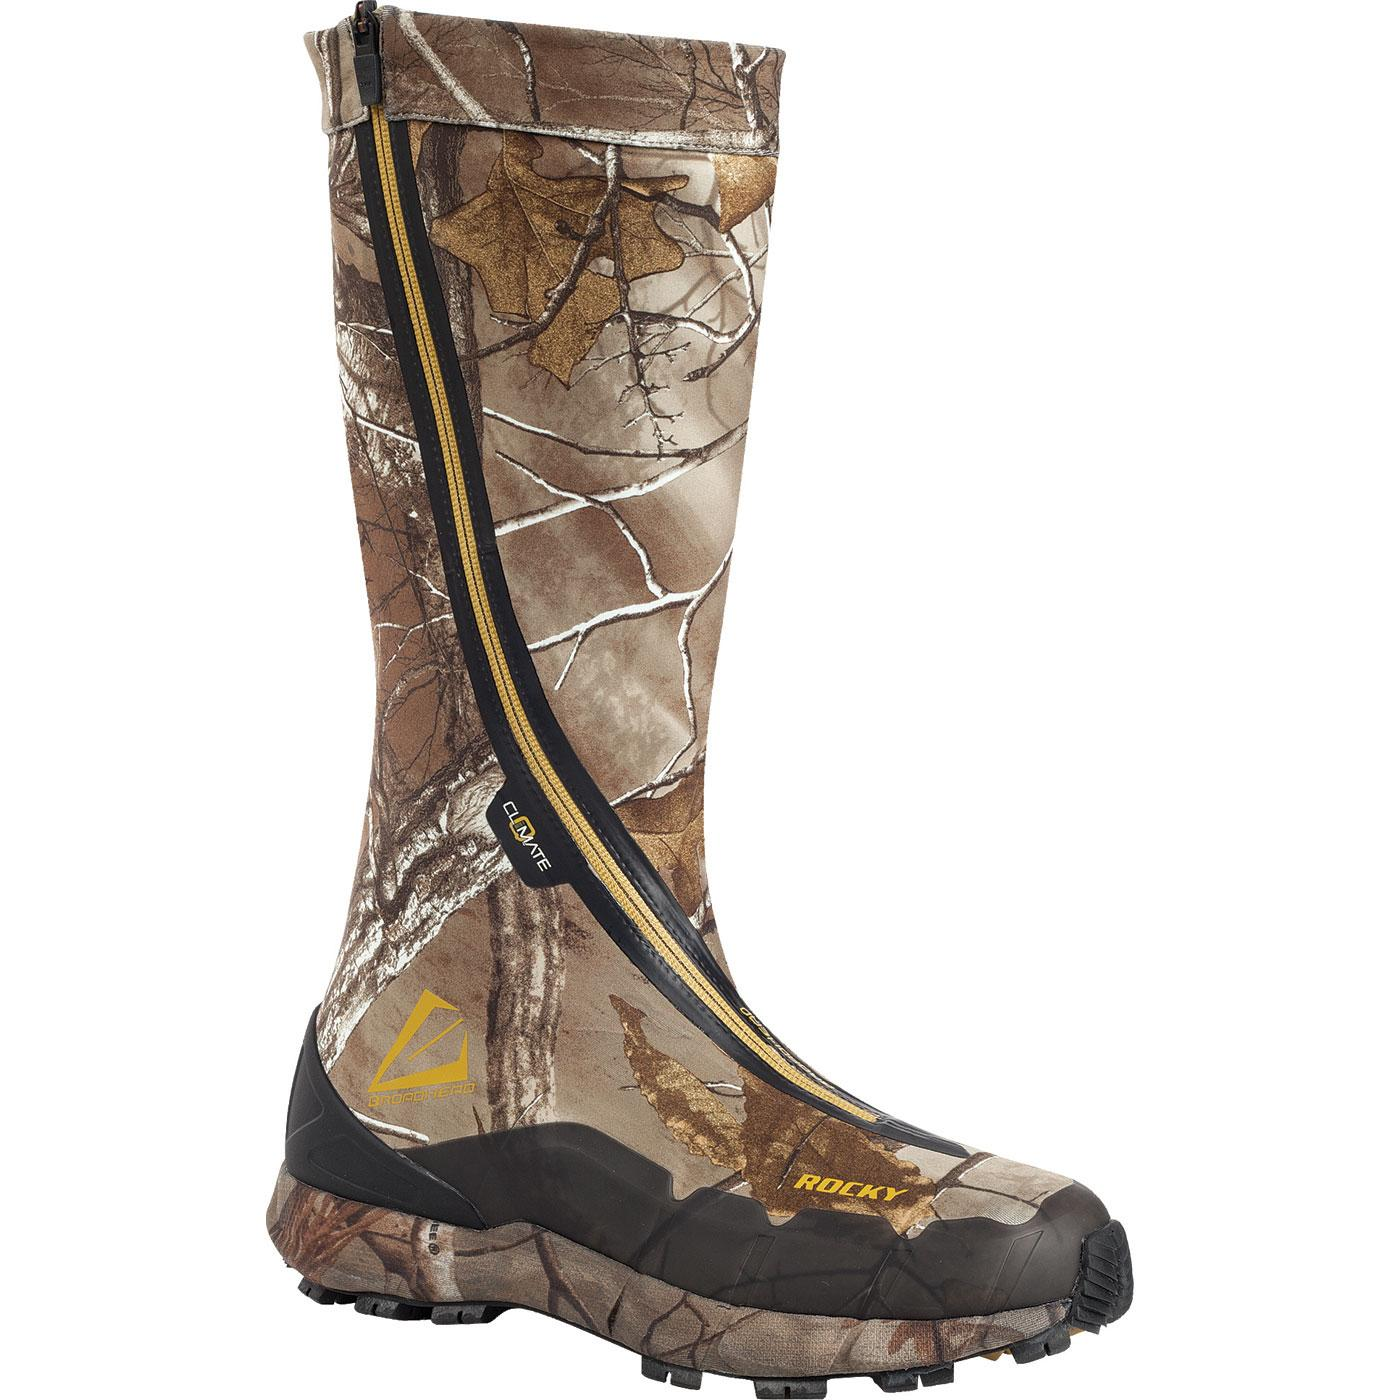 a065de51d76 Rocky Broadhead Hidden Laces Waterproof Boot